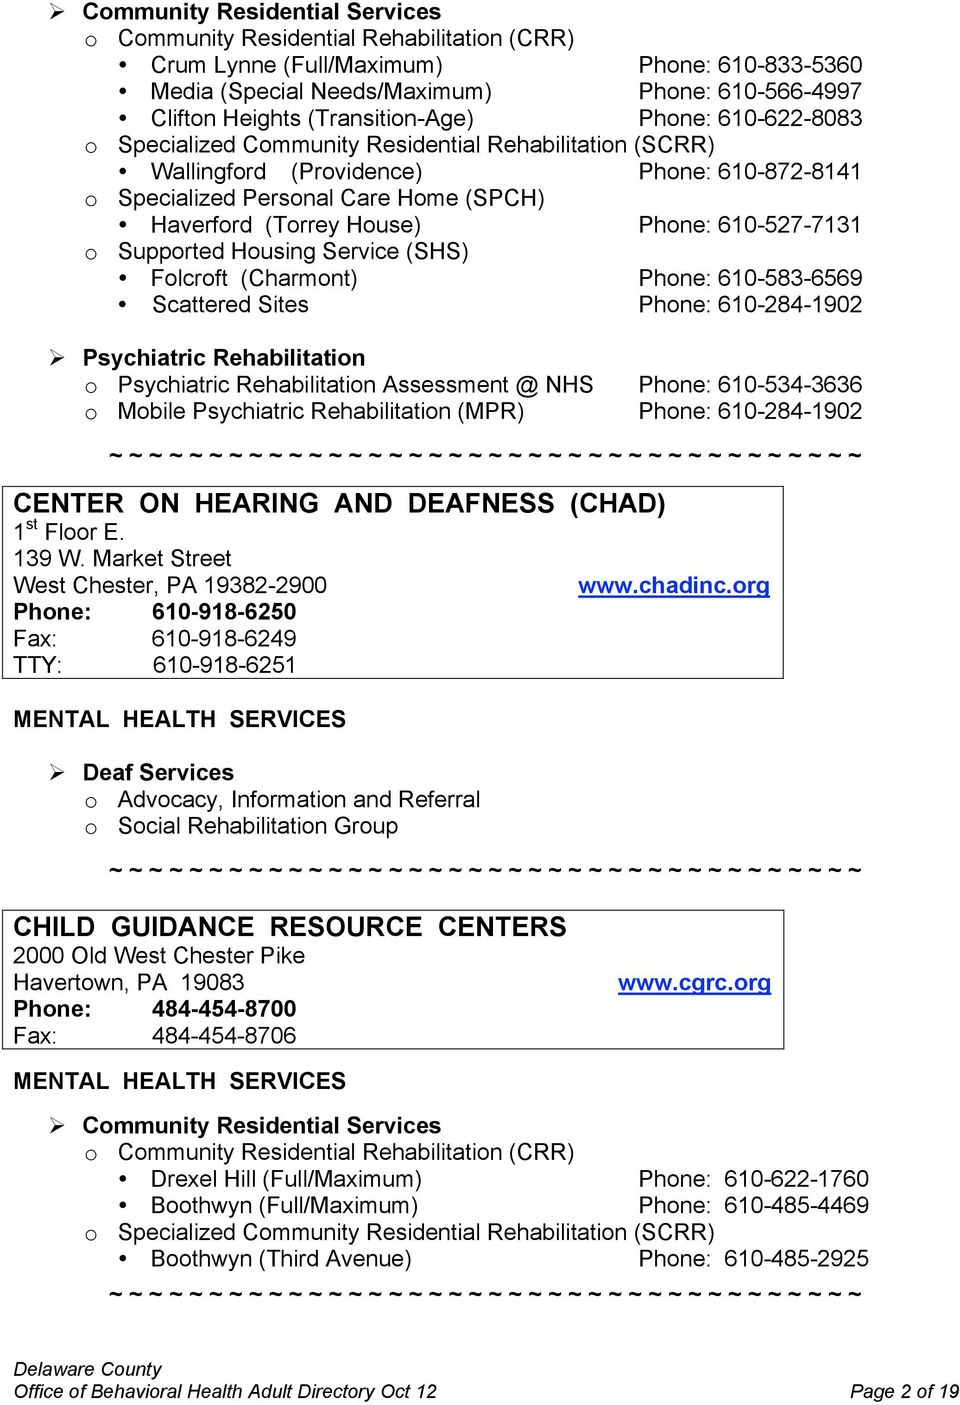 House) Phone: 610-527-7131 o Supported Housing Service (SHS) Folcroft (Charmont) Phone: 610-583-6569 Scattered Sites Phone: 610-284-1902 Psychiatric Rehabilitation o Psychiatric Rehabilitation